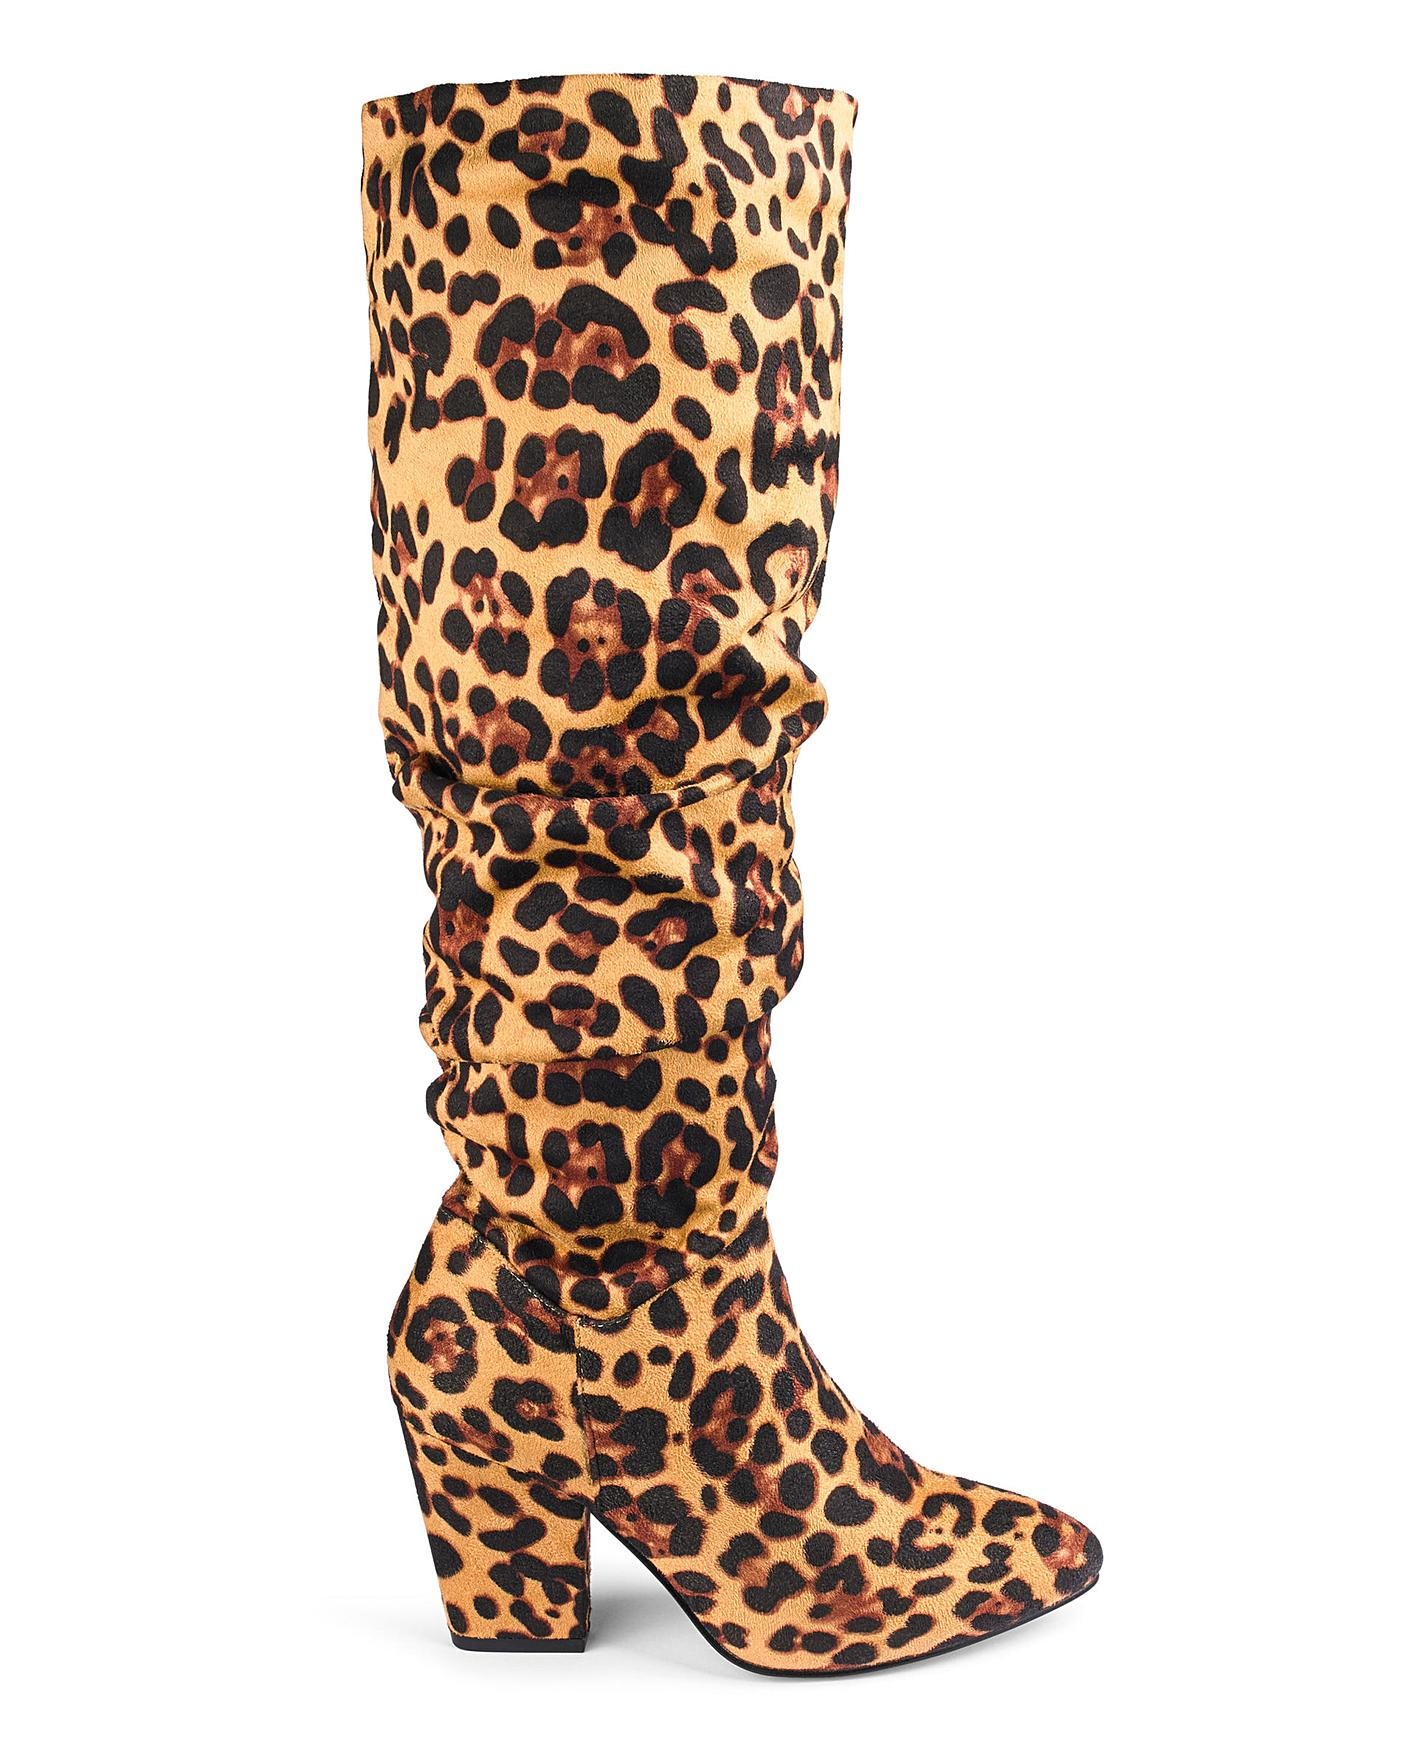 Soft Ruched Boots EEE Fit Standard Calf